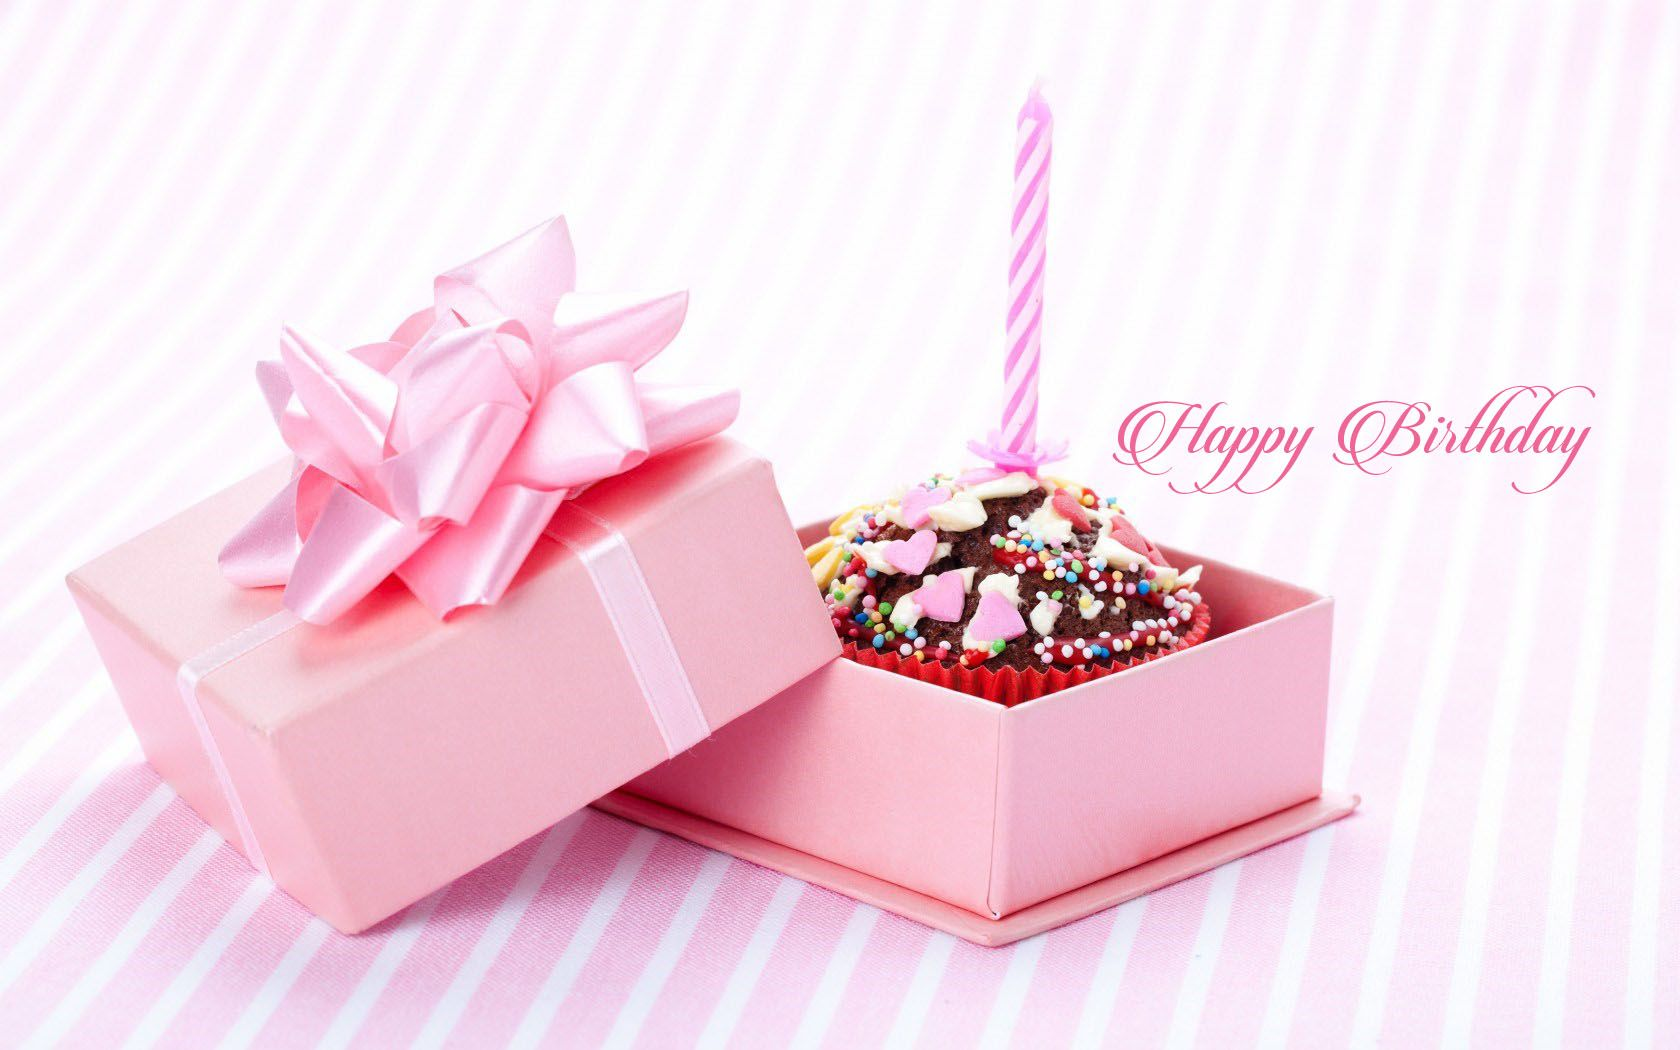 Cake Birthday Gift Images Cake Birthday Gift Images Happy Birthday